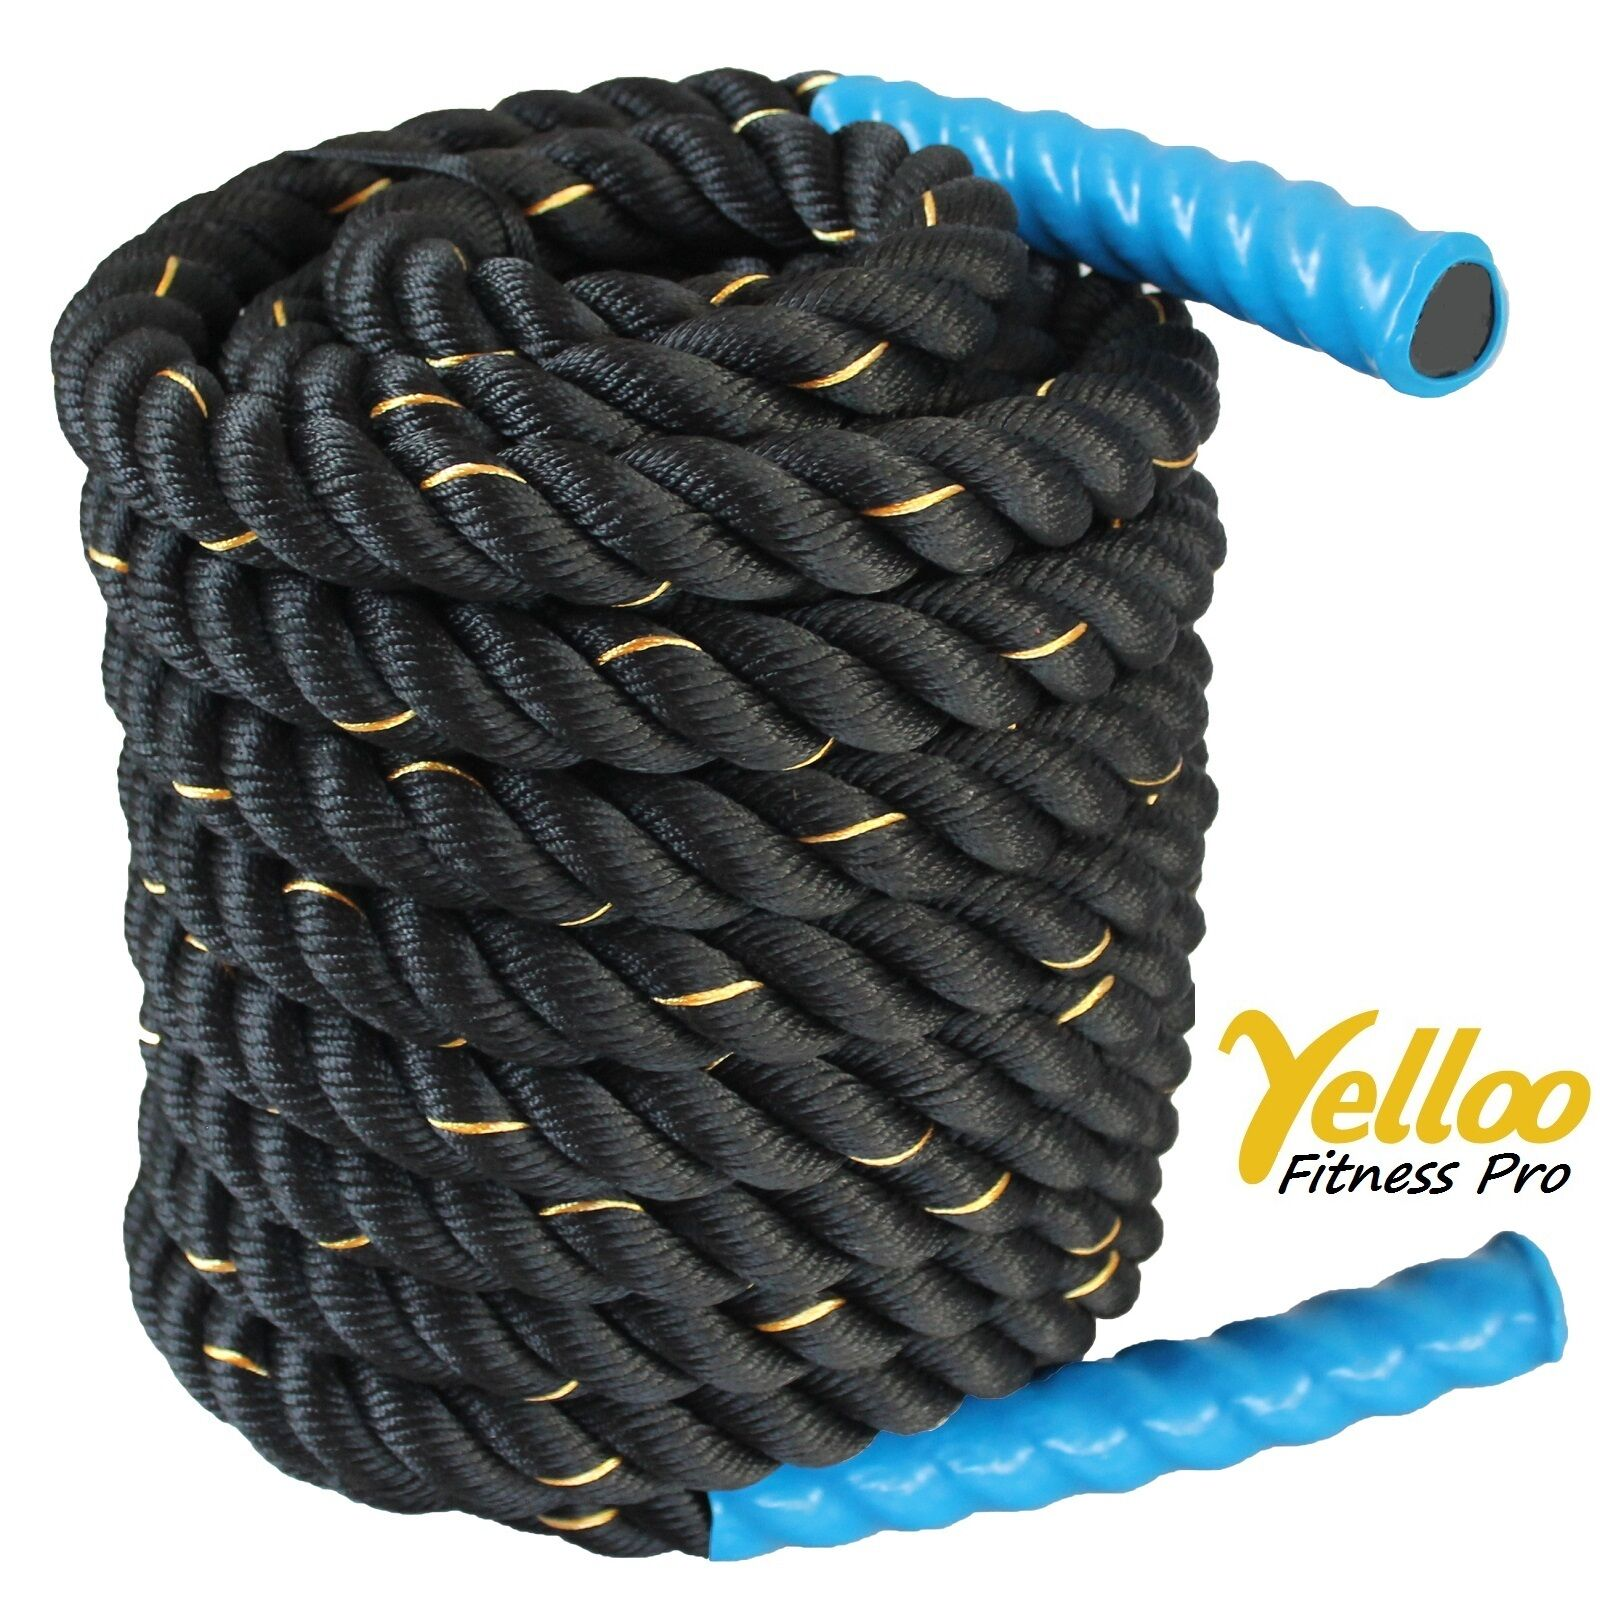 CORDA Fitness Allenamento FUNE Power CrossFit Battle Rope 15 metri x 38 mm bleu